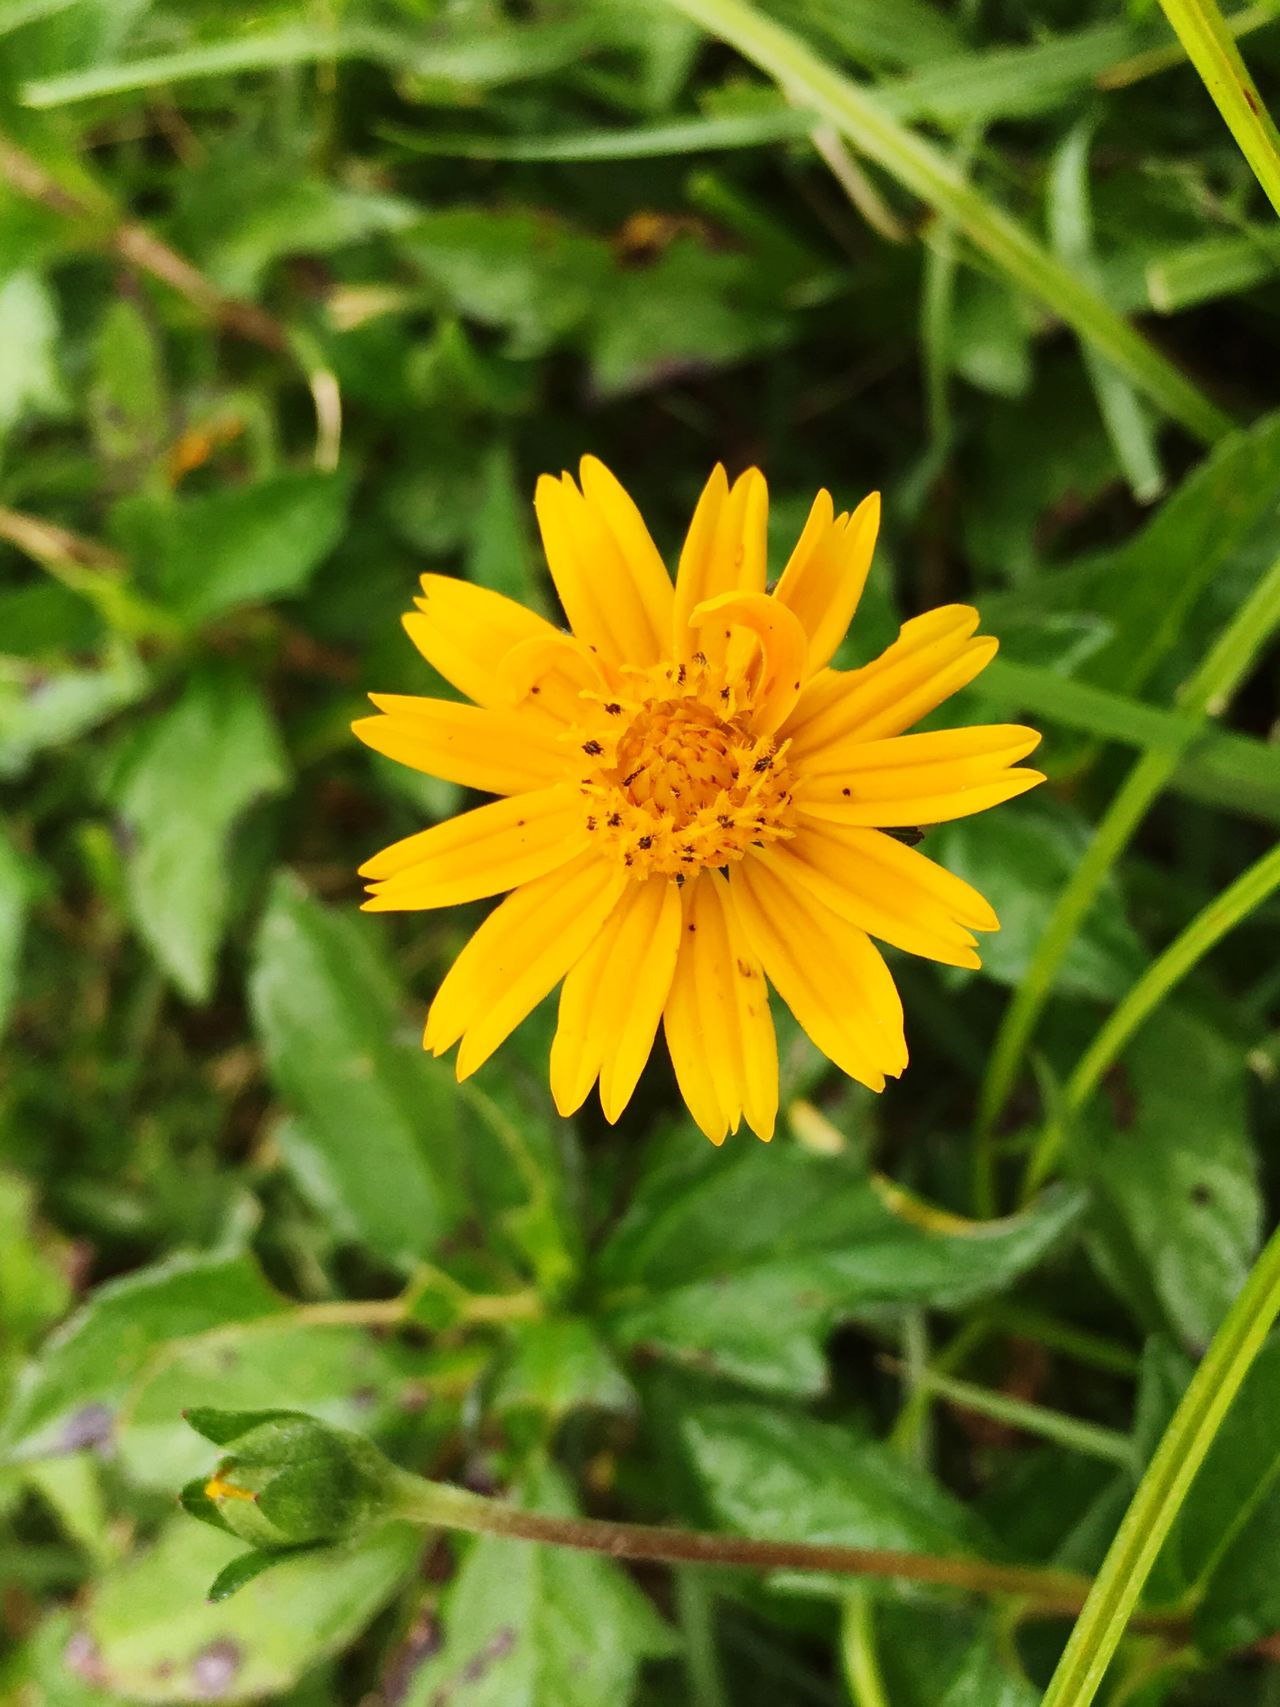 Flower Yellow Petal Nature Fragility Growth Beauty In Nature Flower Head Freshness Plant Blooming Outdoors No People Close-up Day Yellow Color